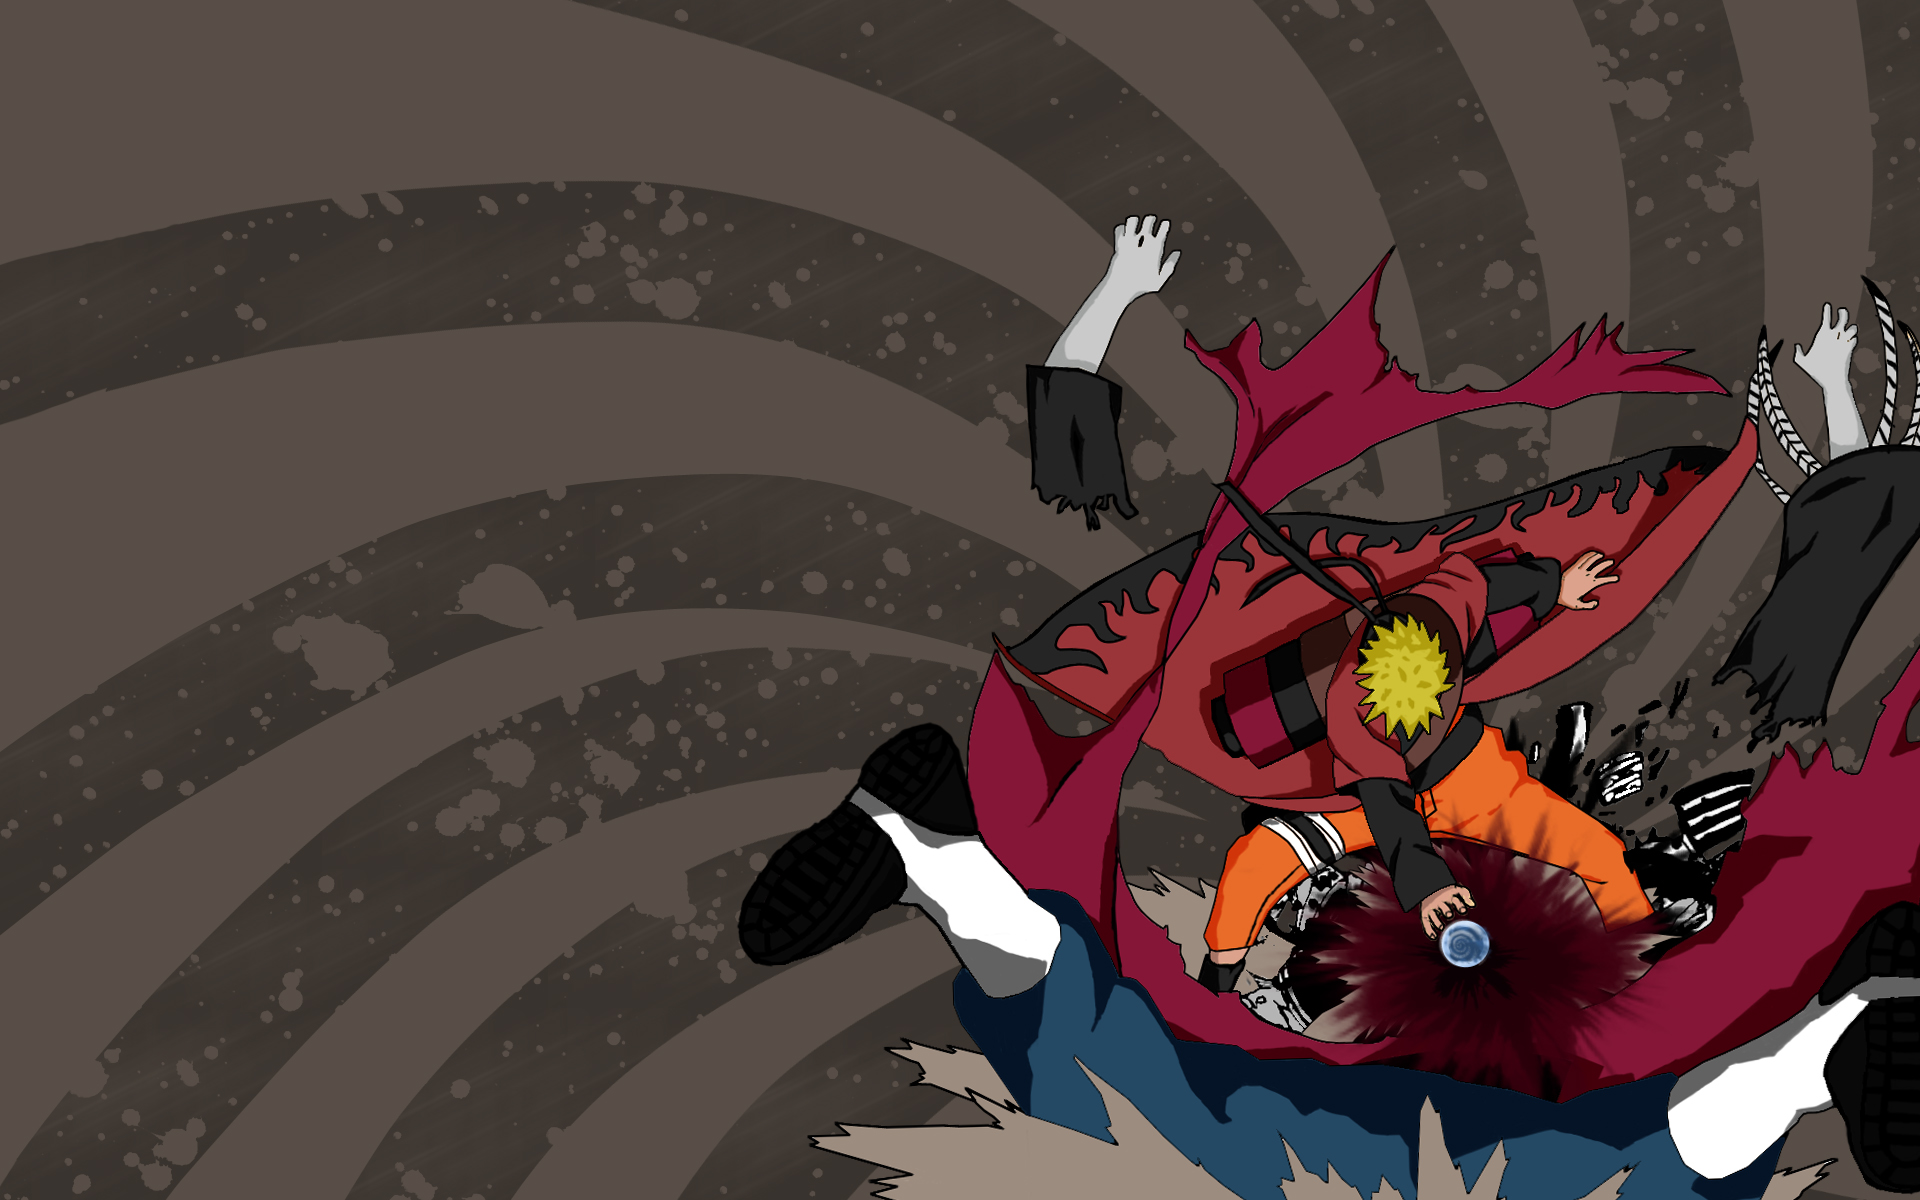 Naruto shippuden wallpapers high quality download free voltagebd Gallery